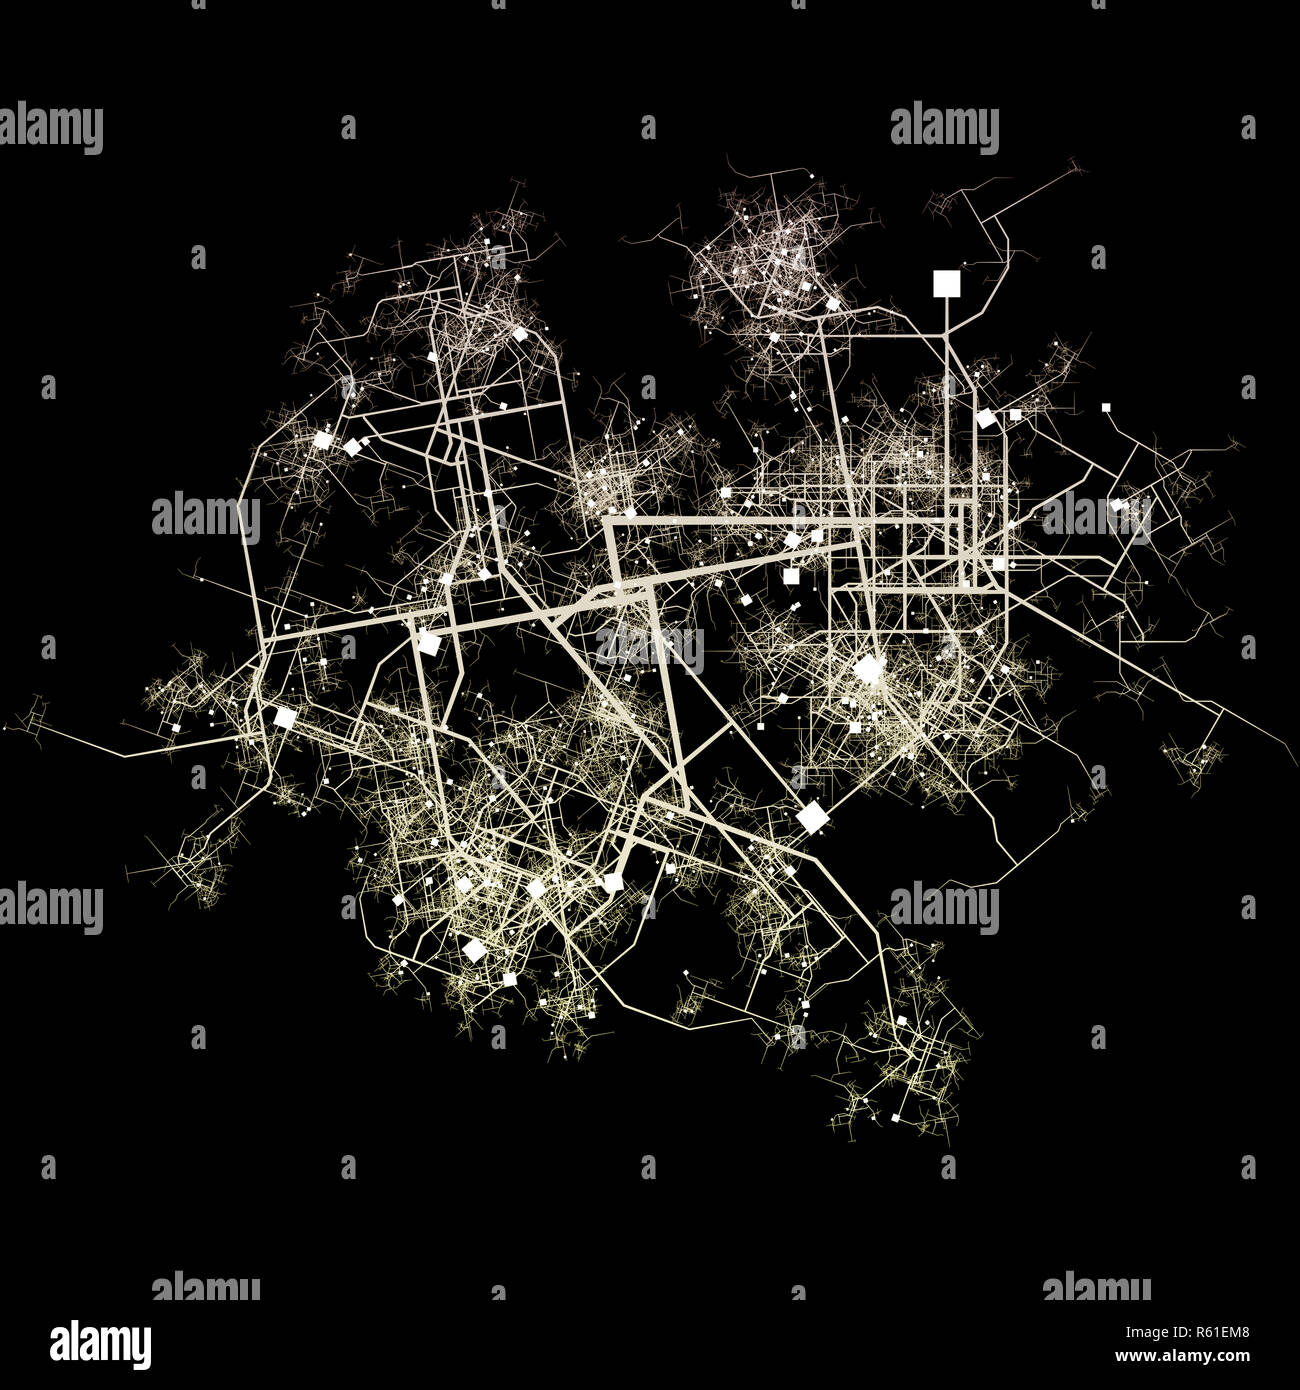 Intricate Fictional City Map - Stock Image